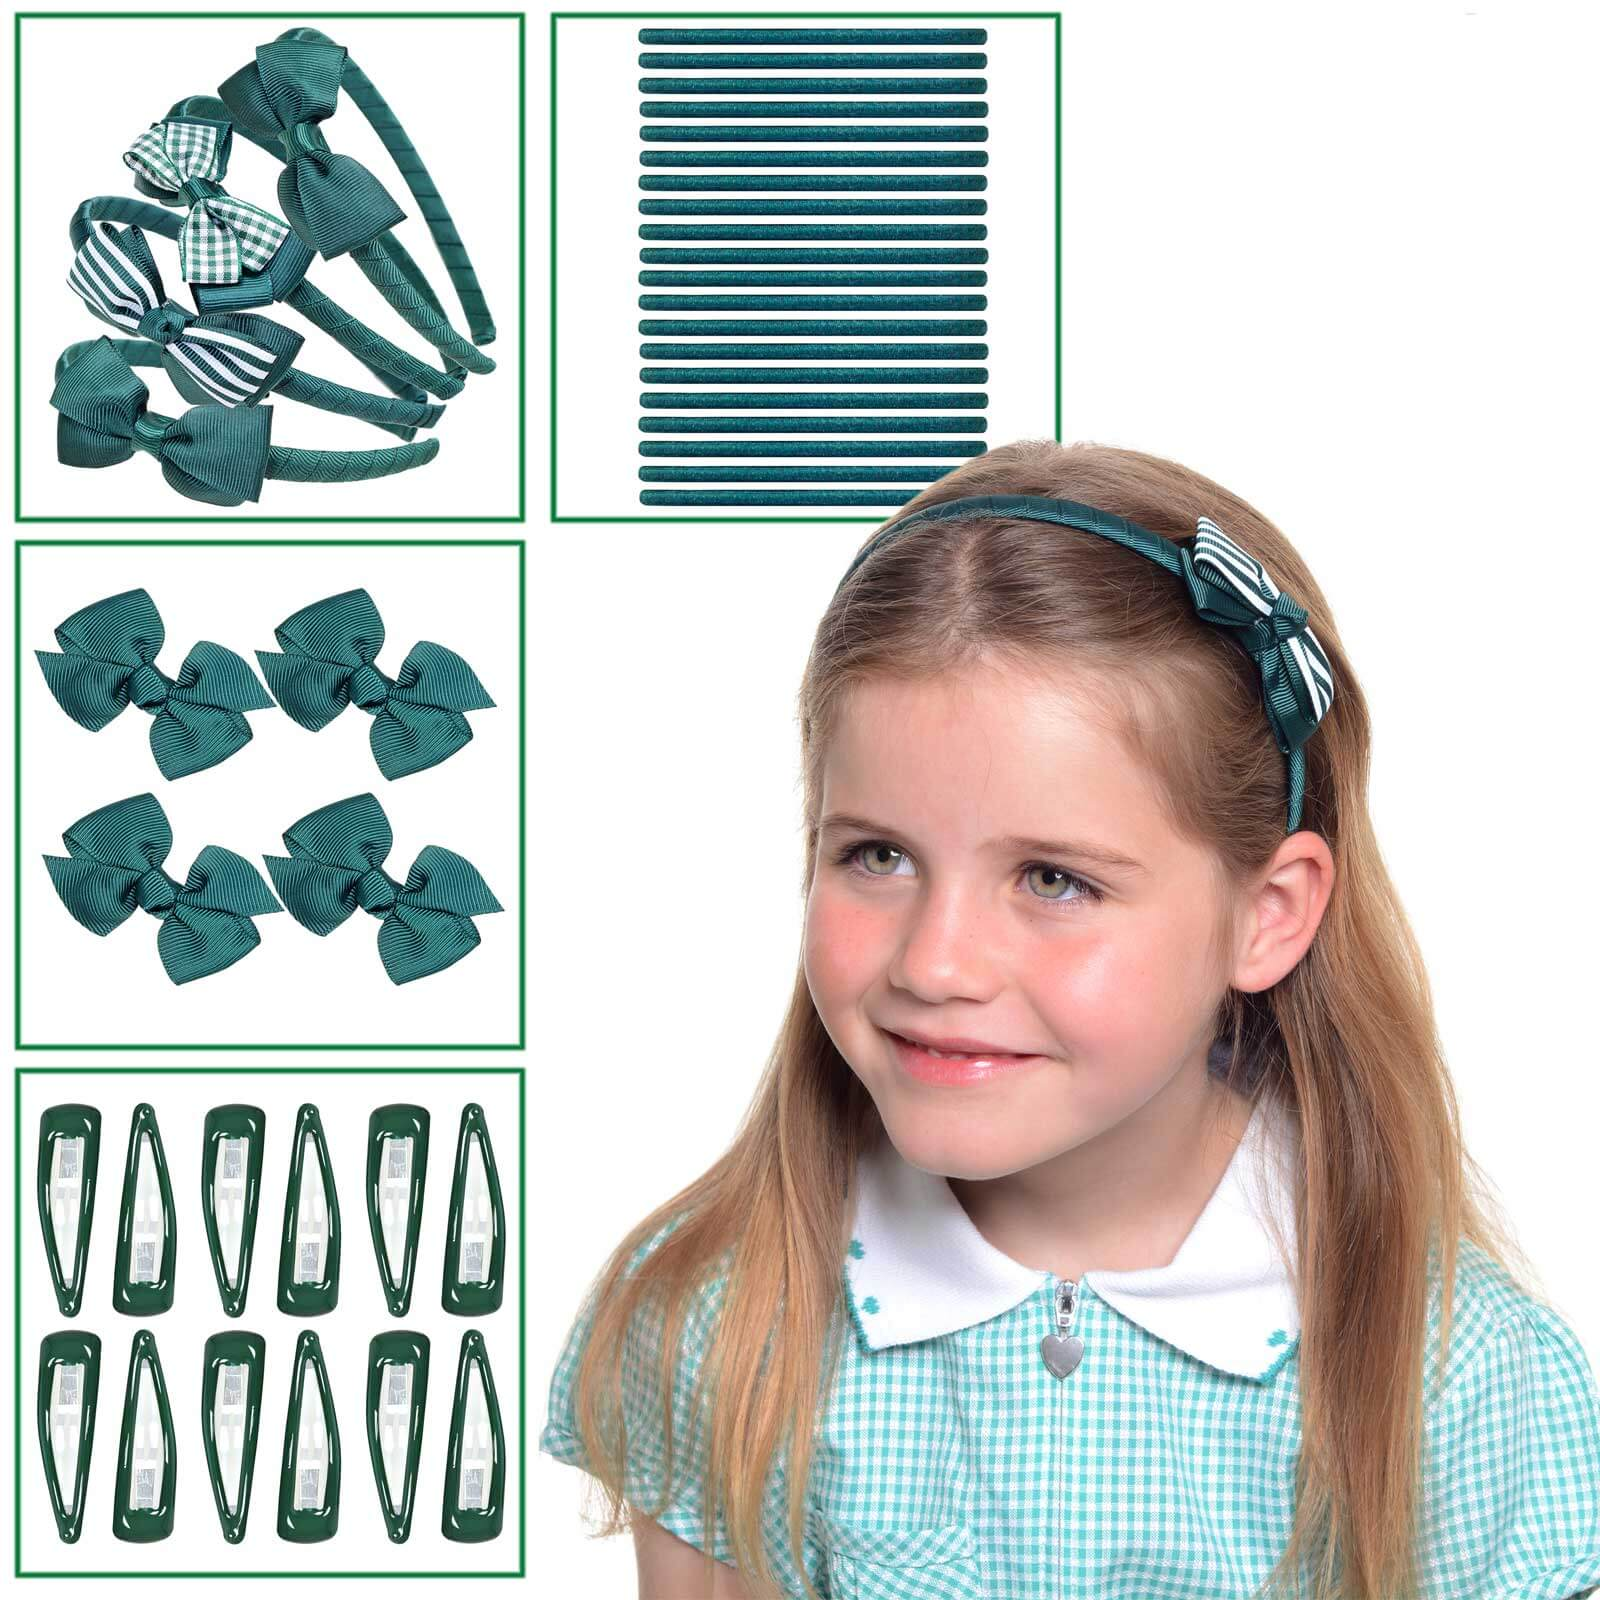 Bumper green hair school accessories set, Green school hair accessories